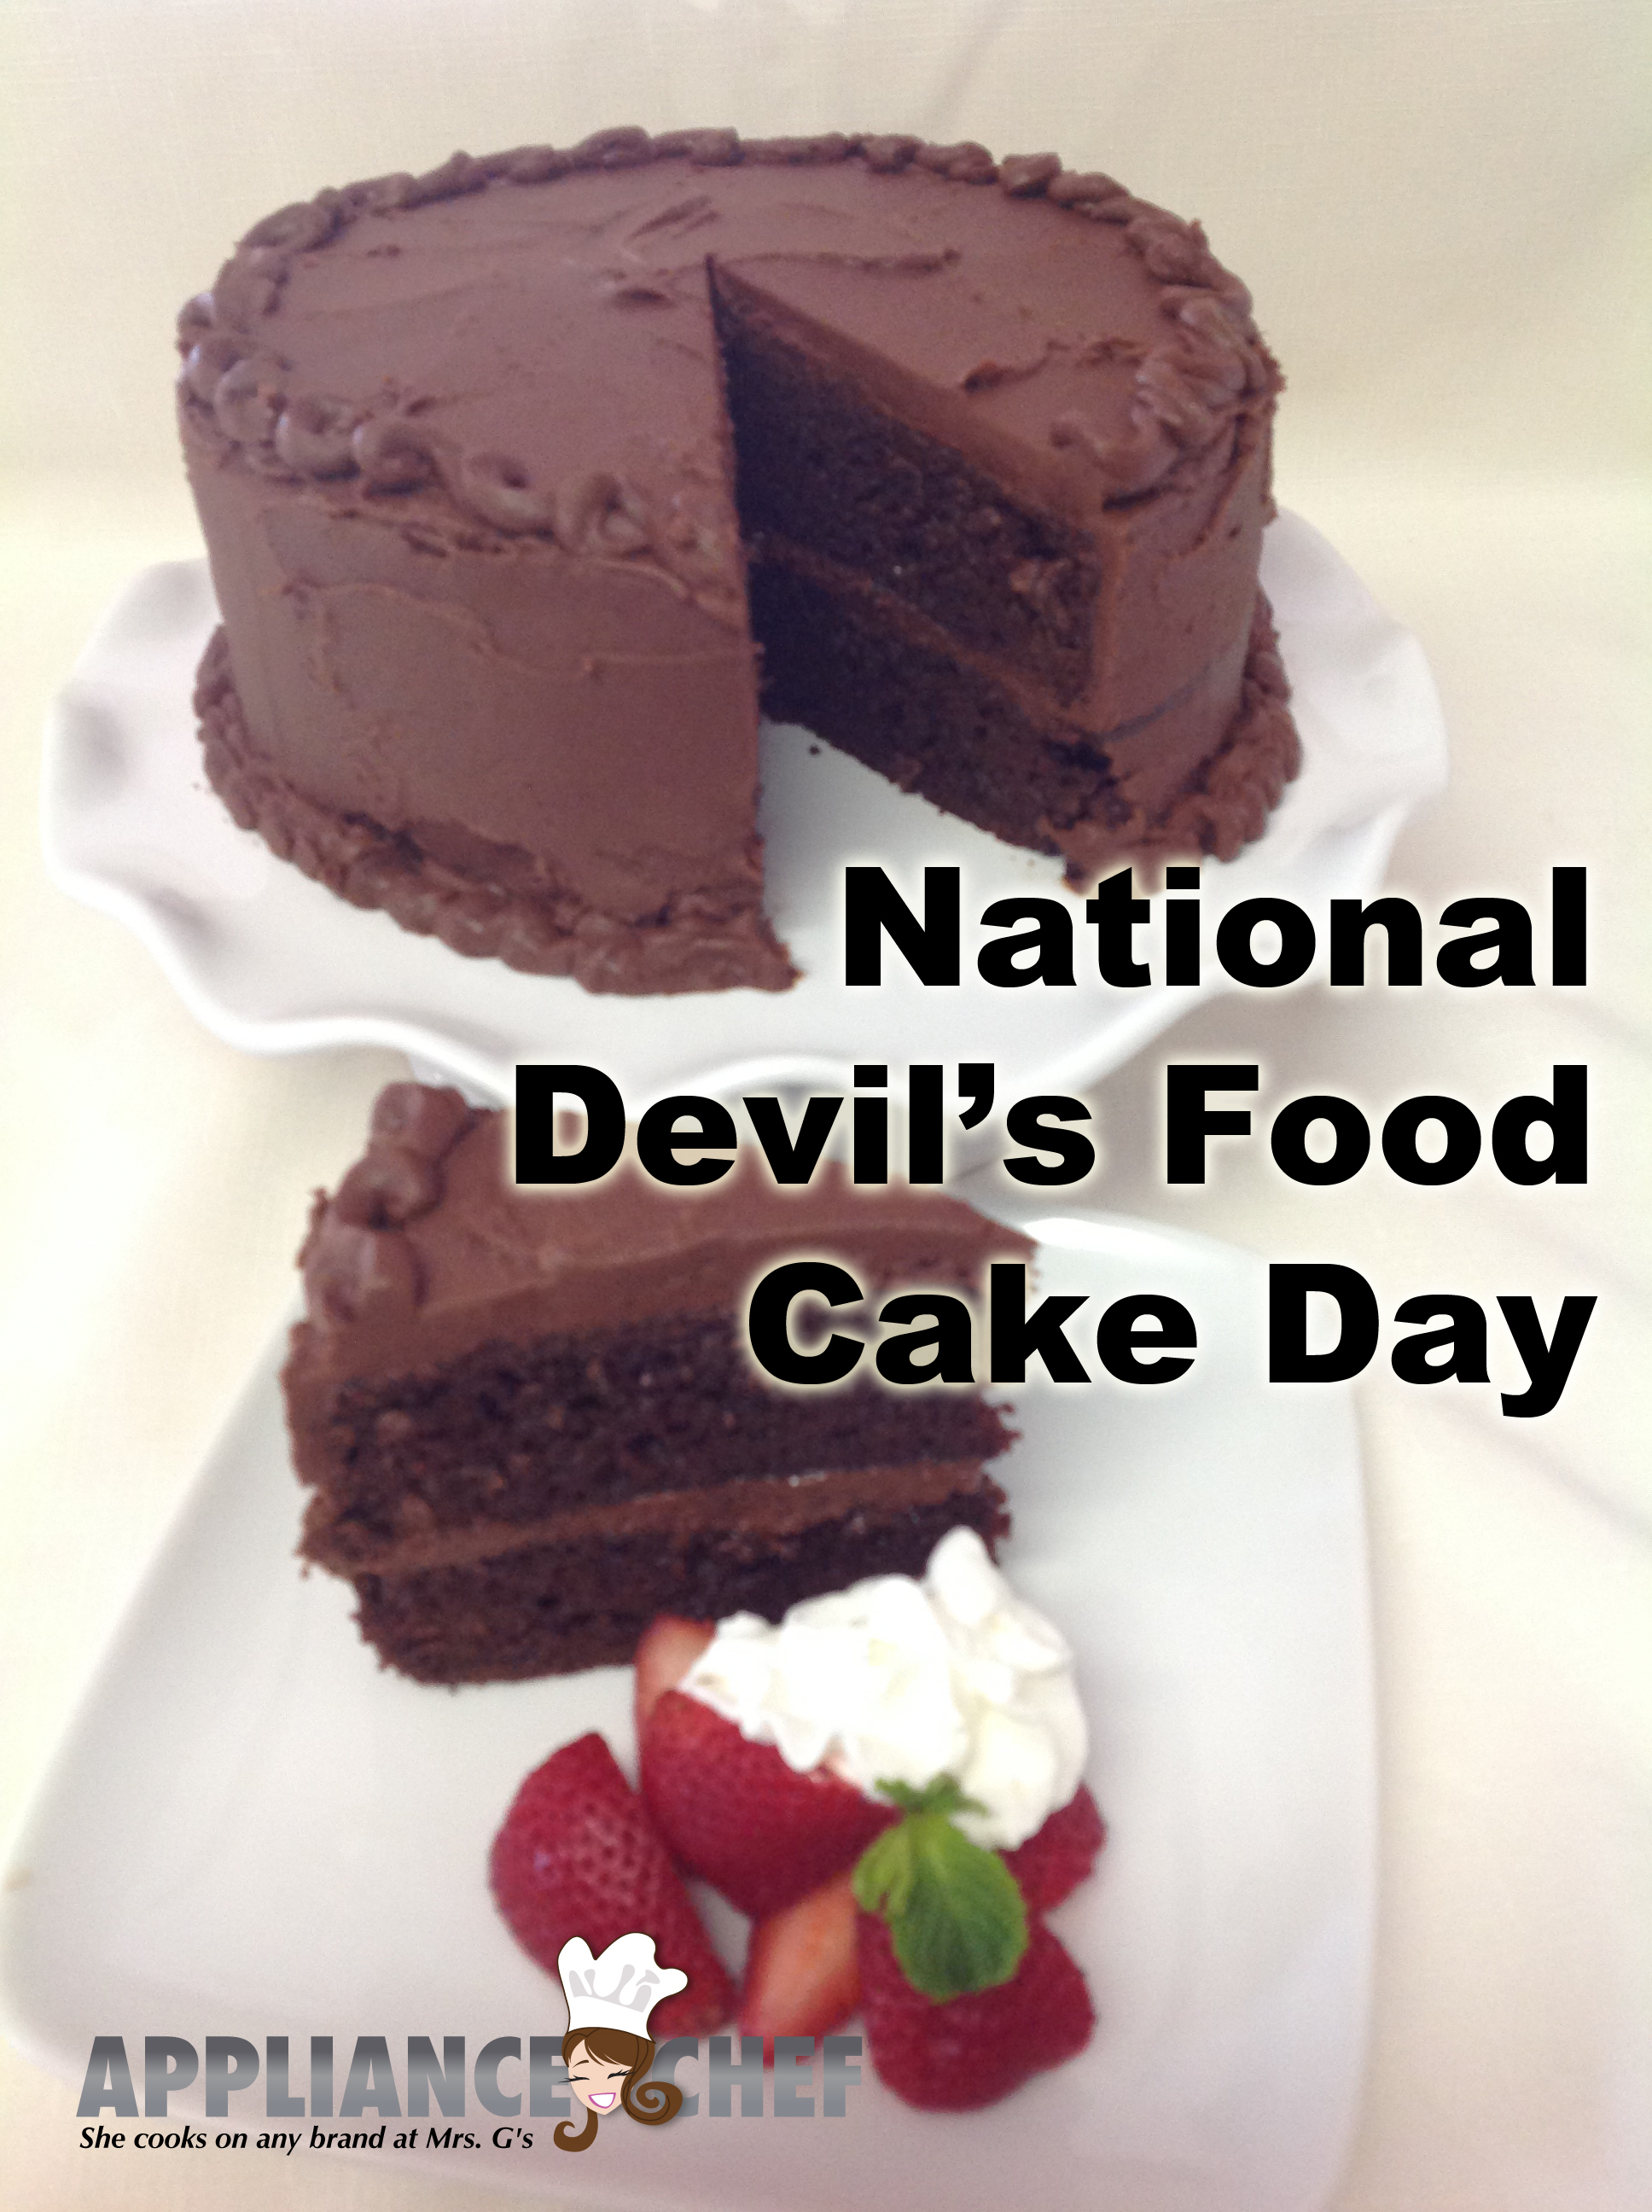 May 19th is National Devil's Food Cake Day! | Mrs. G's Appliance Chef